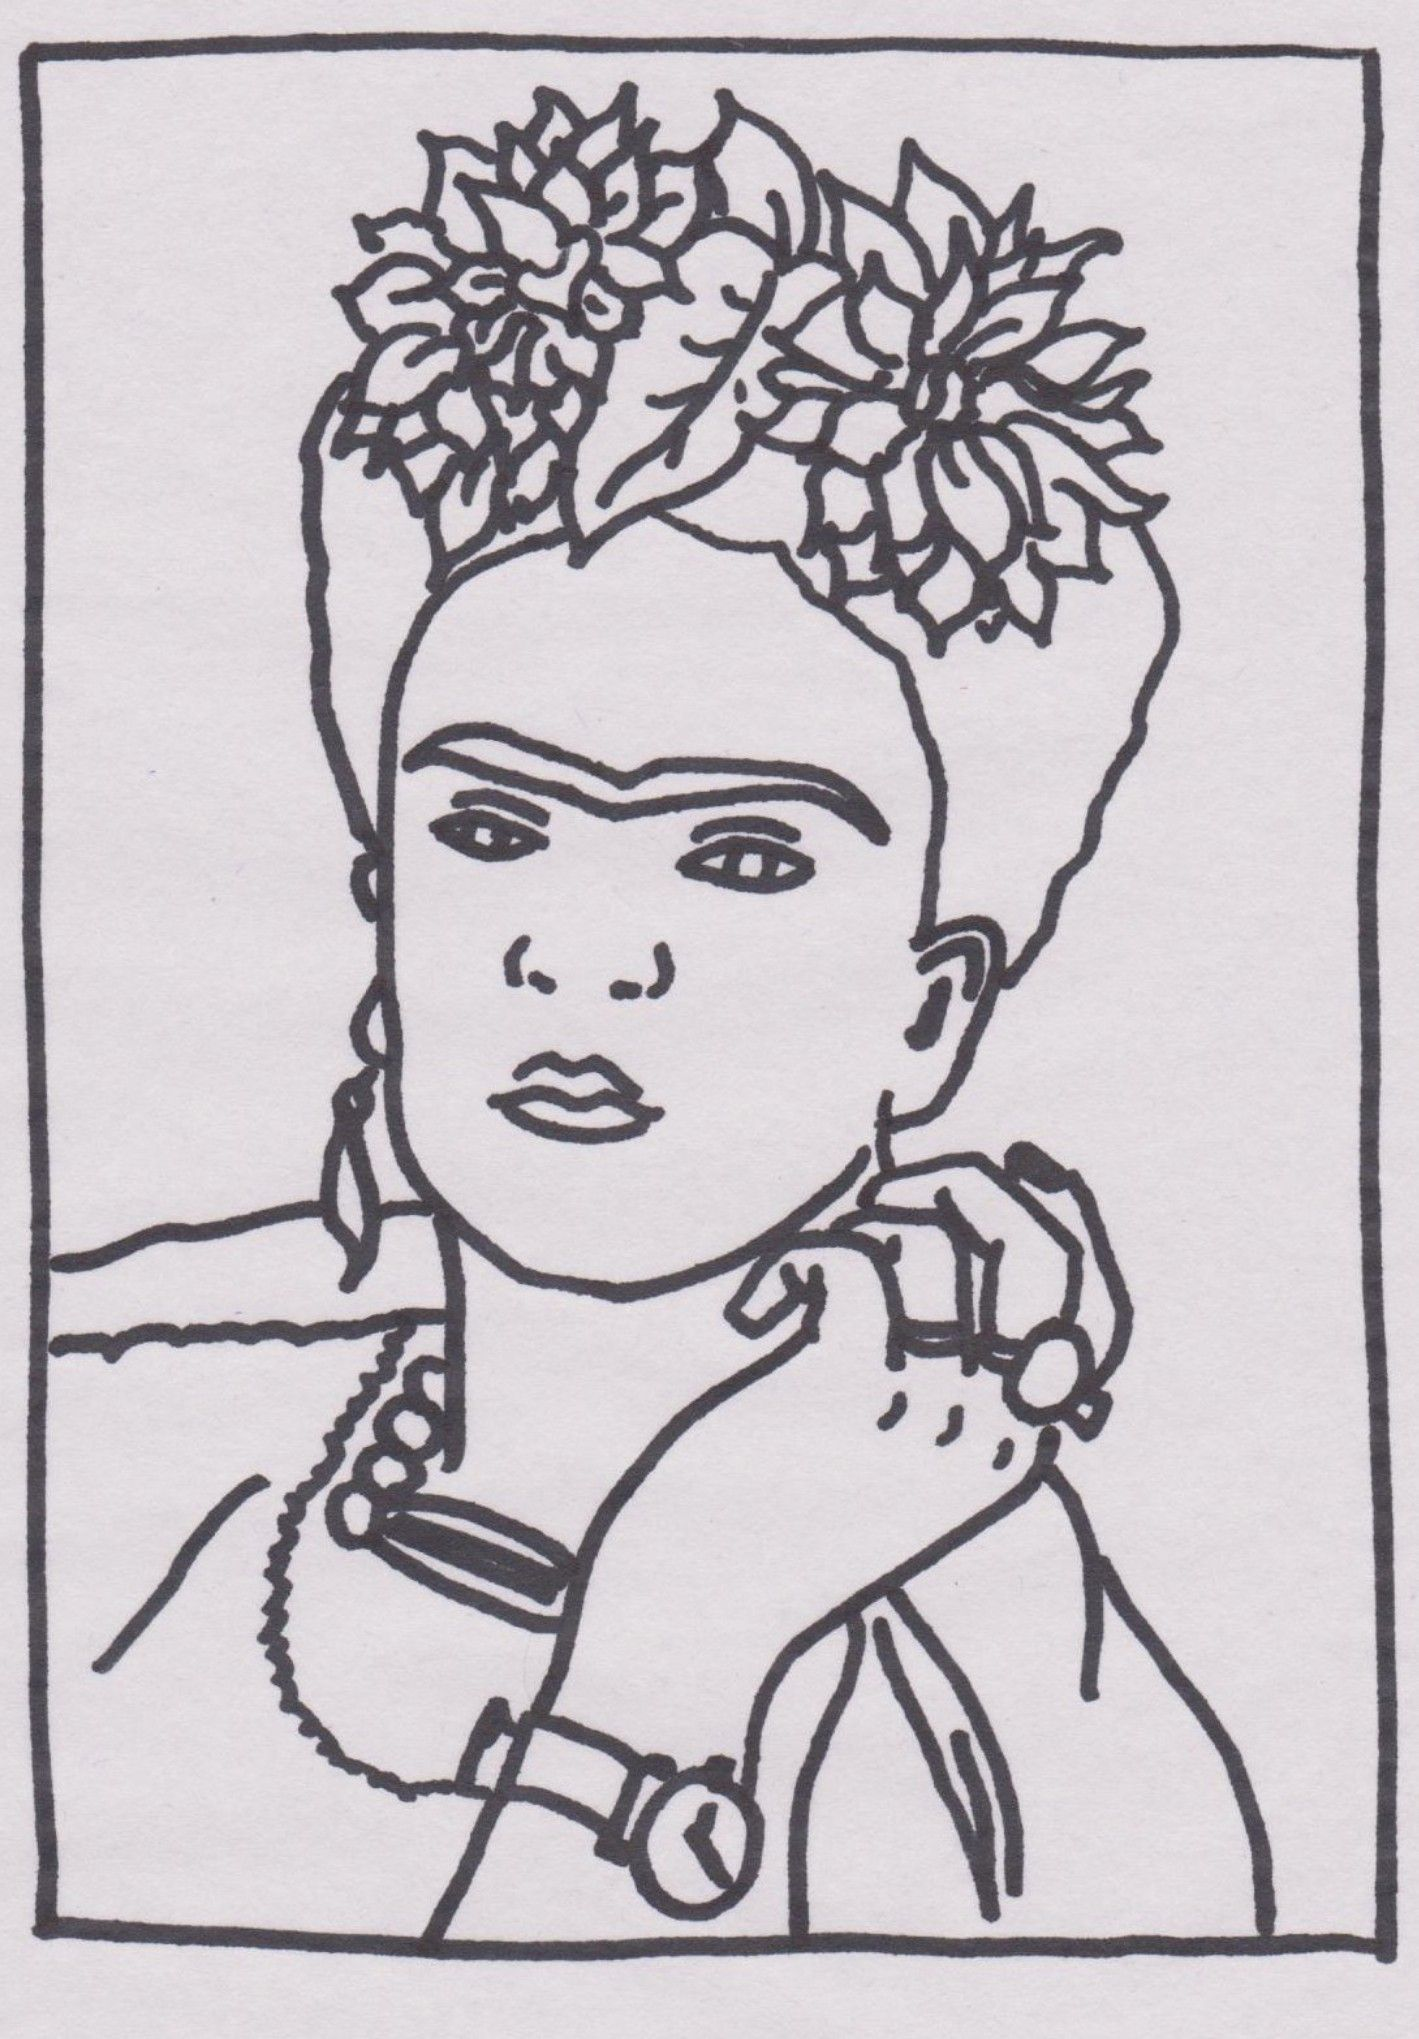 Frida Kahlo Self Portrait Art Colouring Page Sparrow Art Coloring Pages School Art Activities